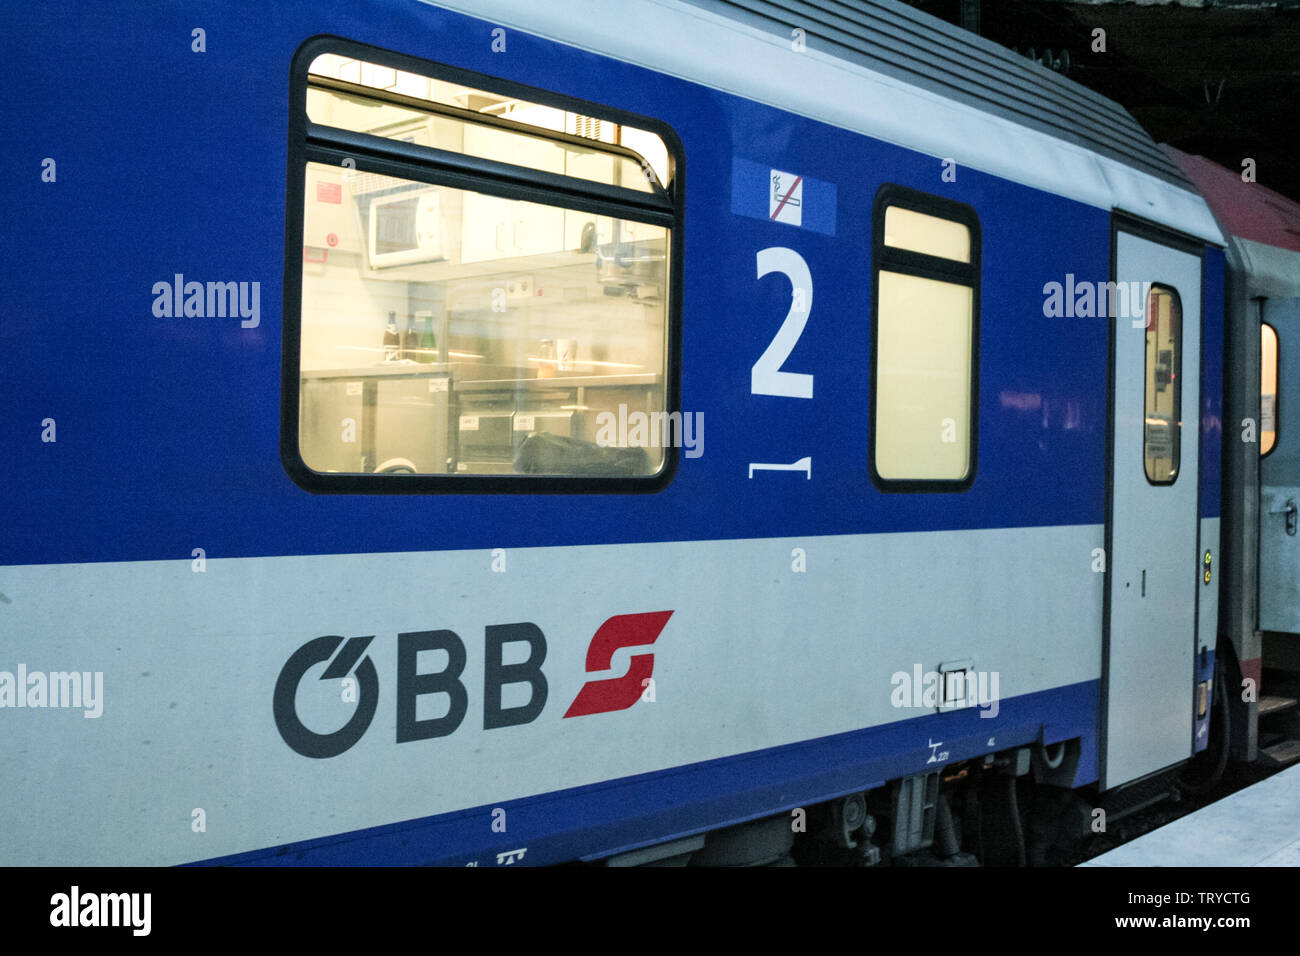 PARIS, FRANCE - DECEMBER 29, 2006: Sleeping Car of the Austrian Railways with their logo (OBB) on an overnight train ready for departure to Vienna in - Stock Image